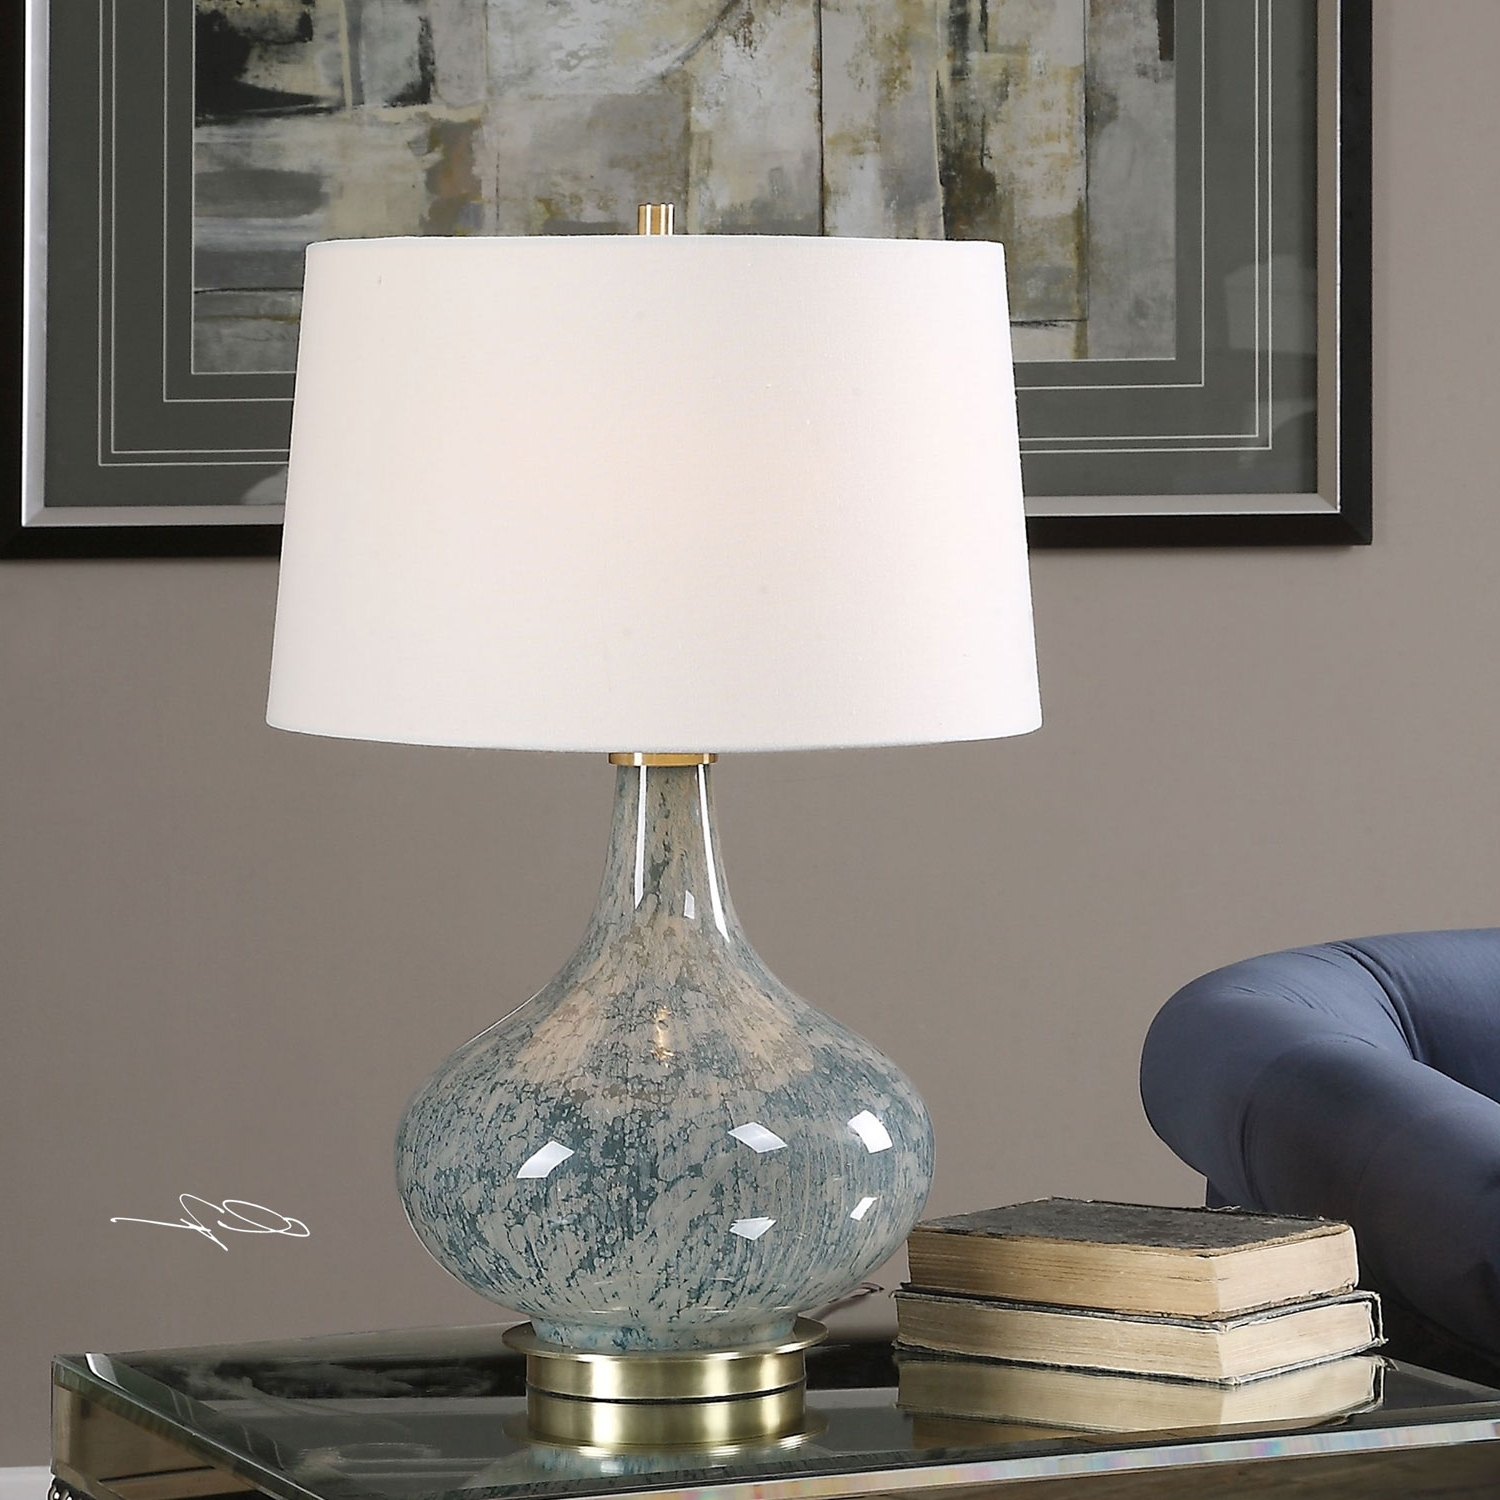 69 Most First Rate Side Lamps Tiffany Table Grey Lamp Gold Large For With Regard To Newest Large Table Lamps For Living Room (View 2 of 15)